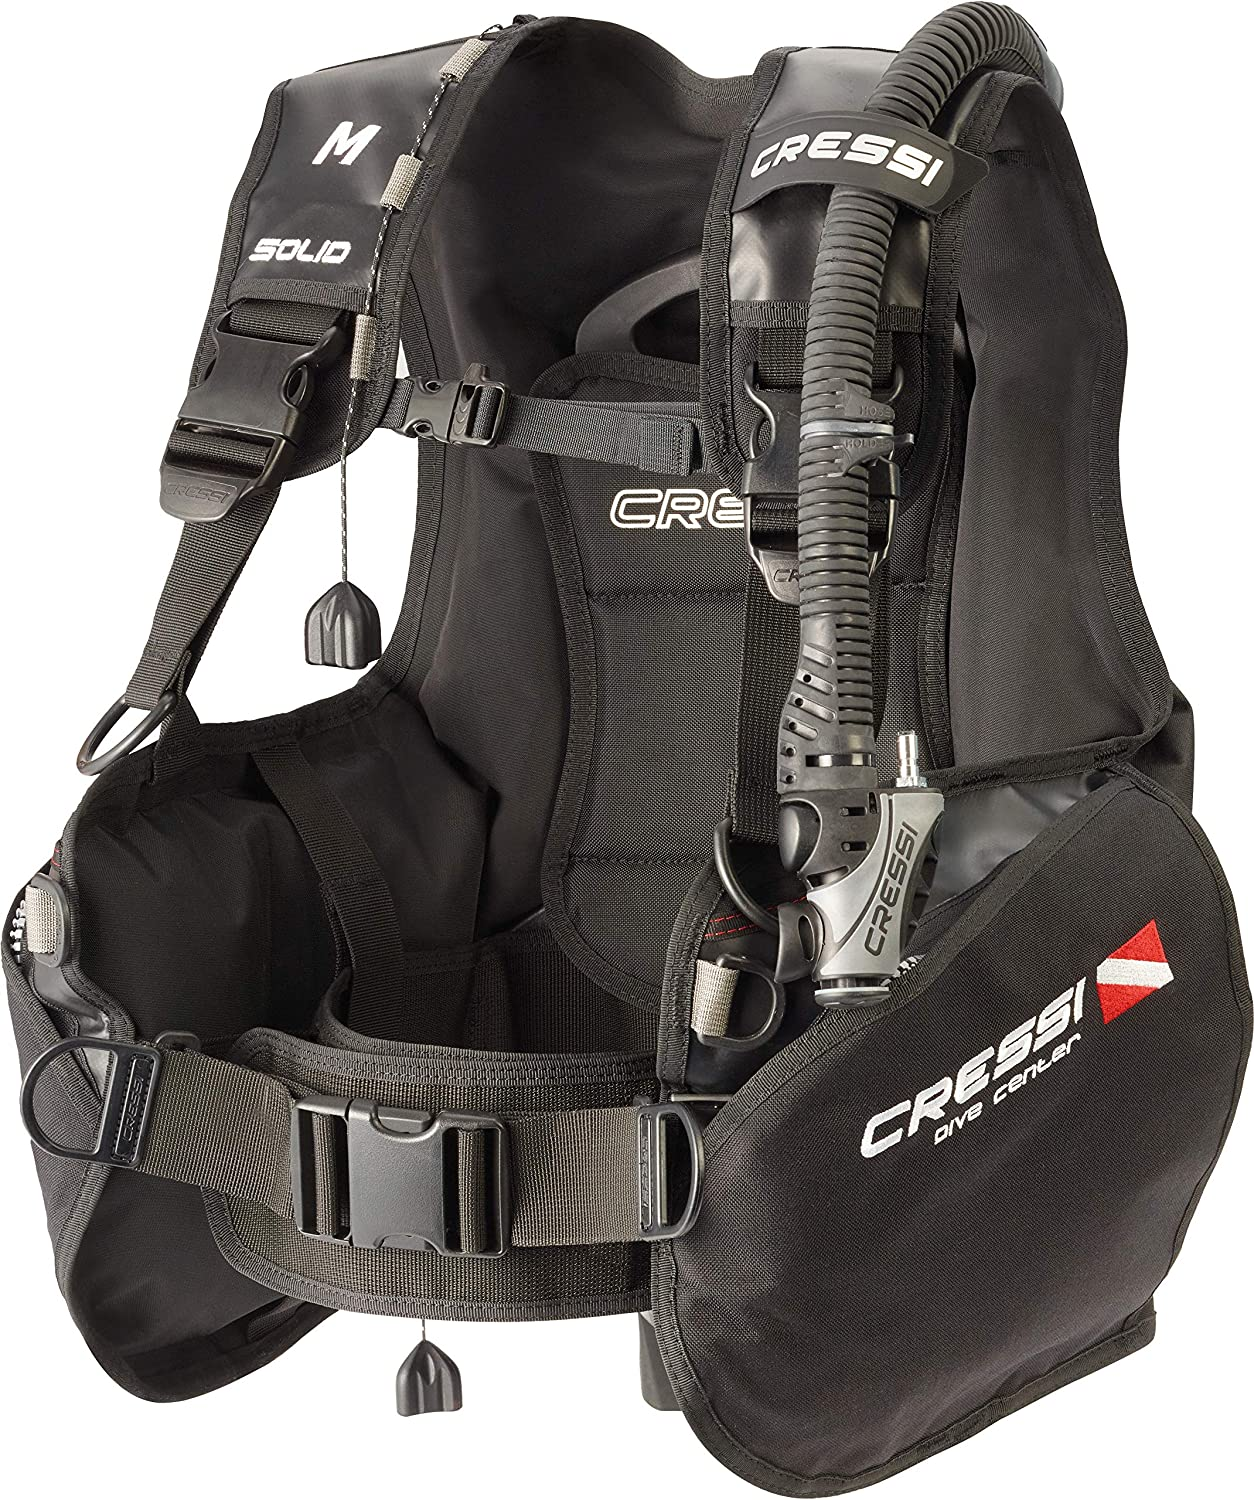 Cressi Scuba Diving Jacket BCD Designed for Intense Use Large Pockets Solid: Designed in Italy High-Lift Capacity Nylon 500D